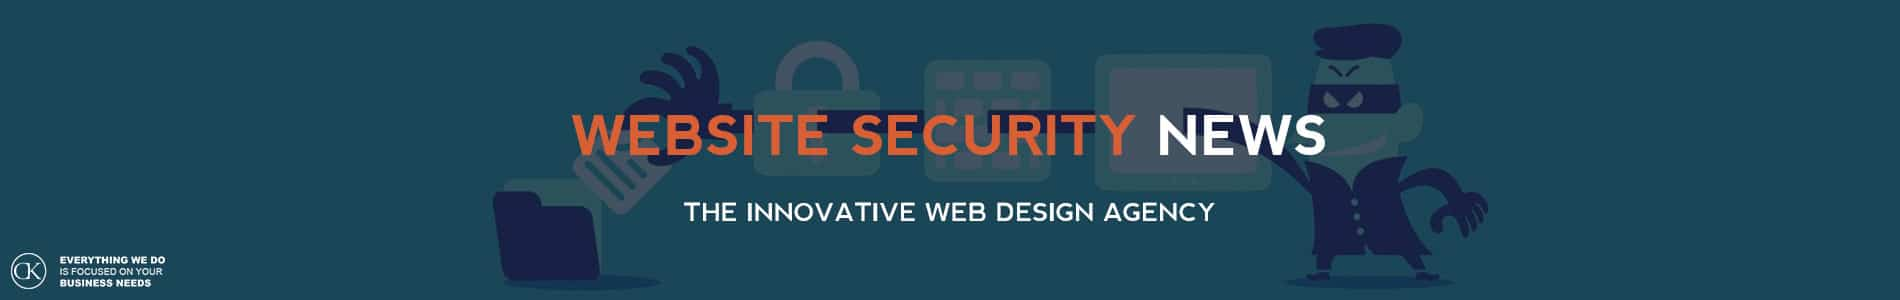 website security news by CK web design dublin